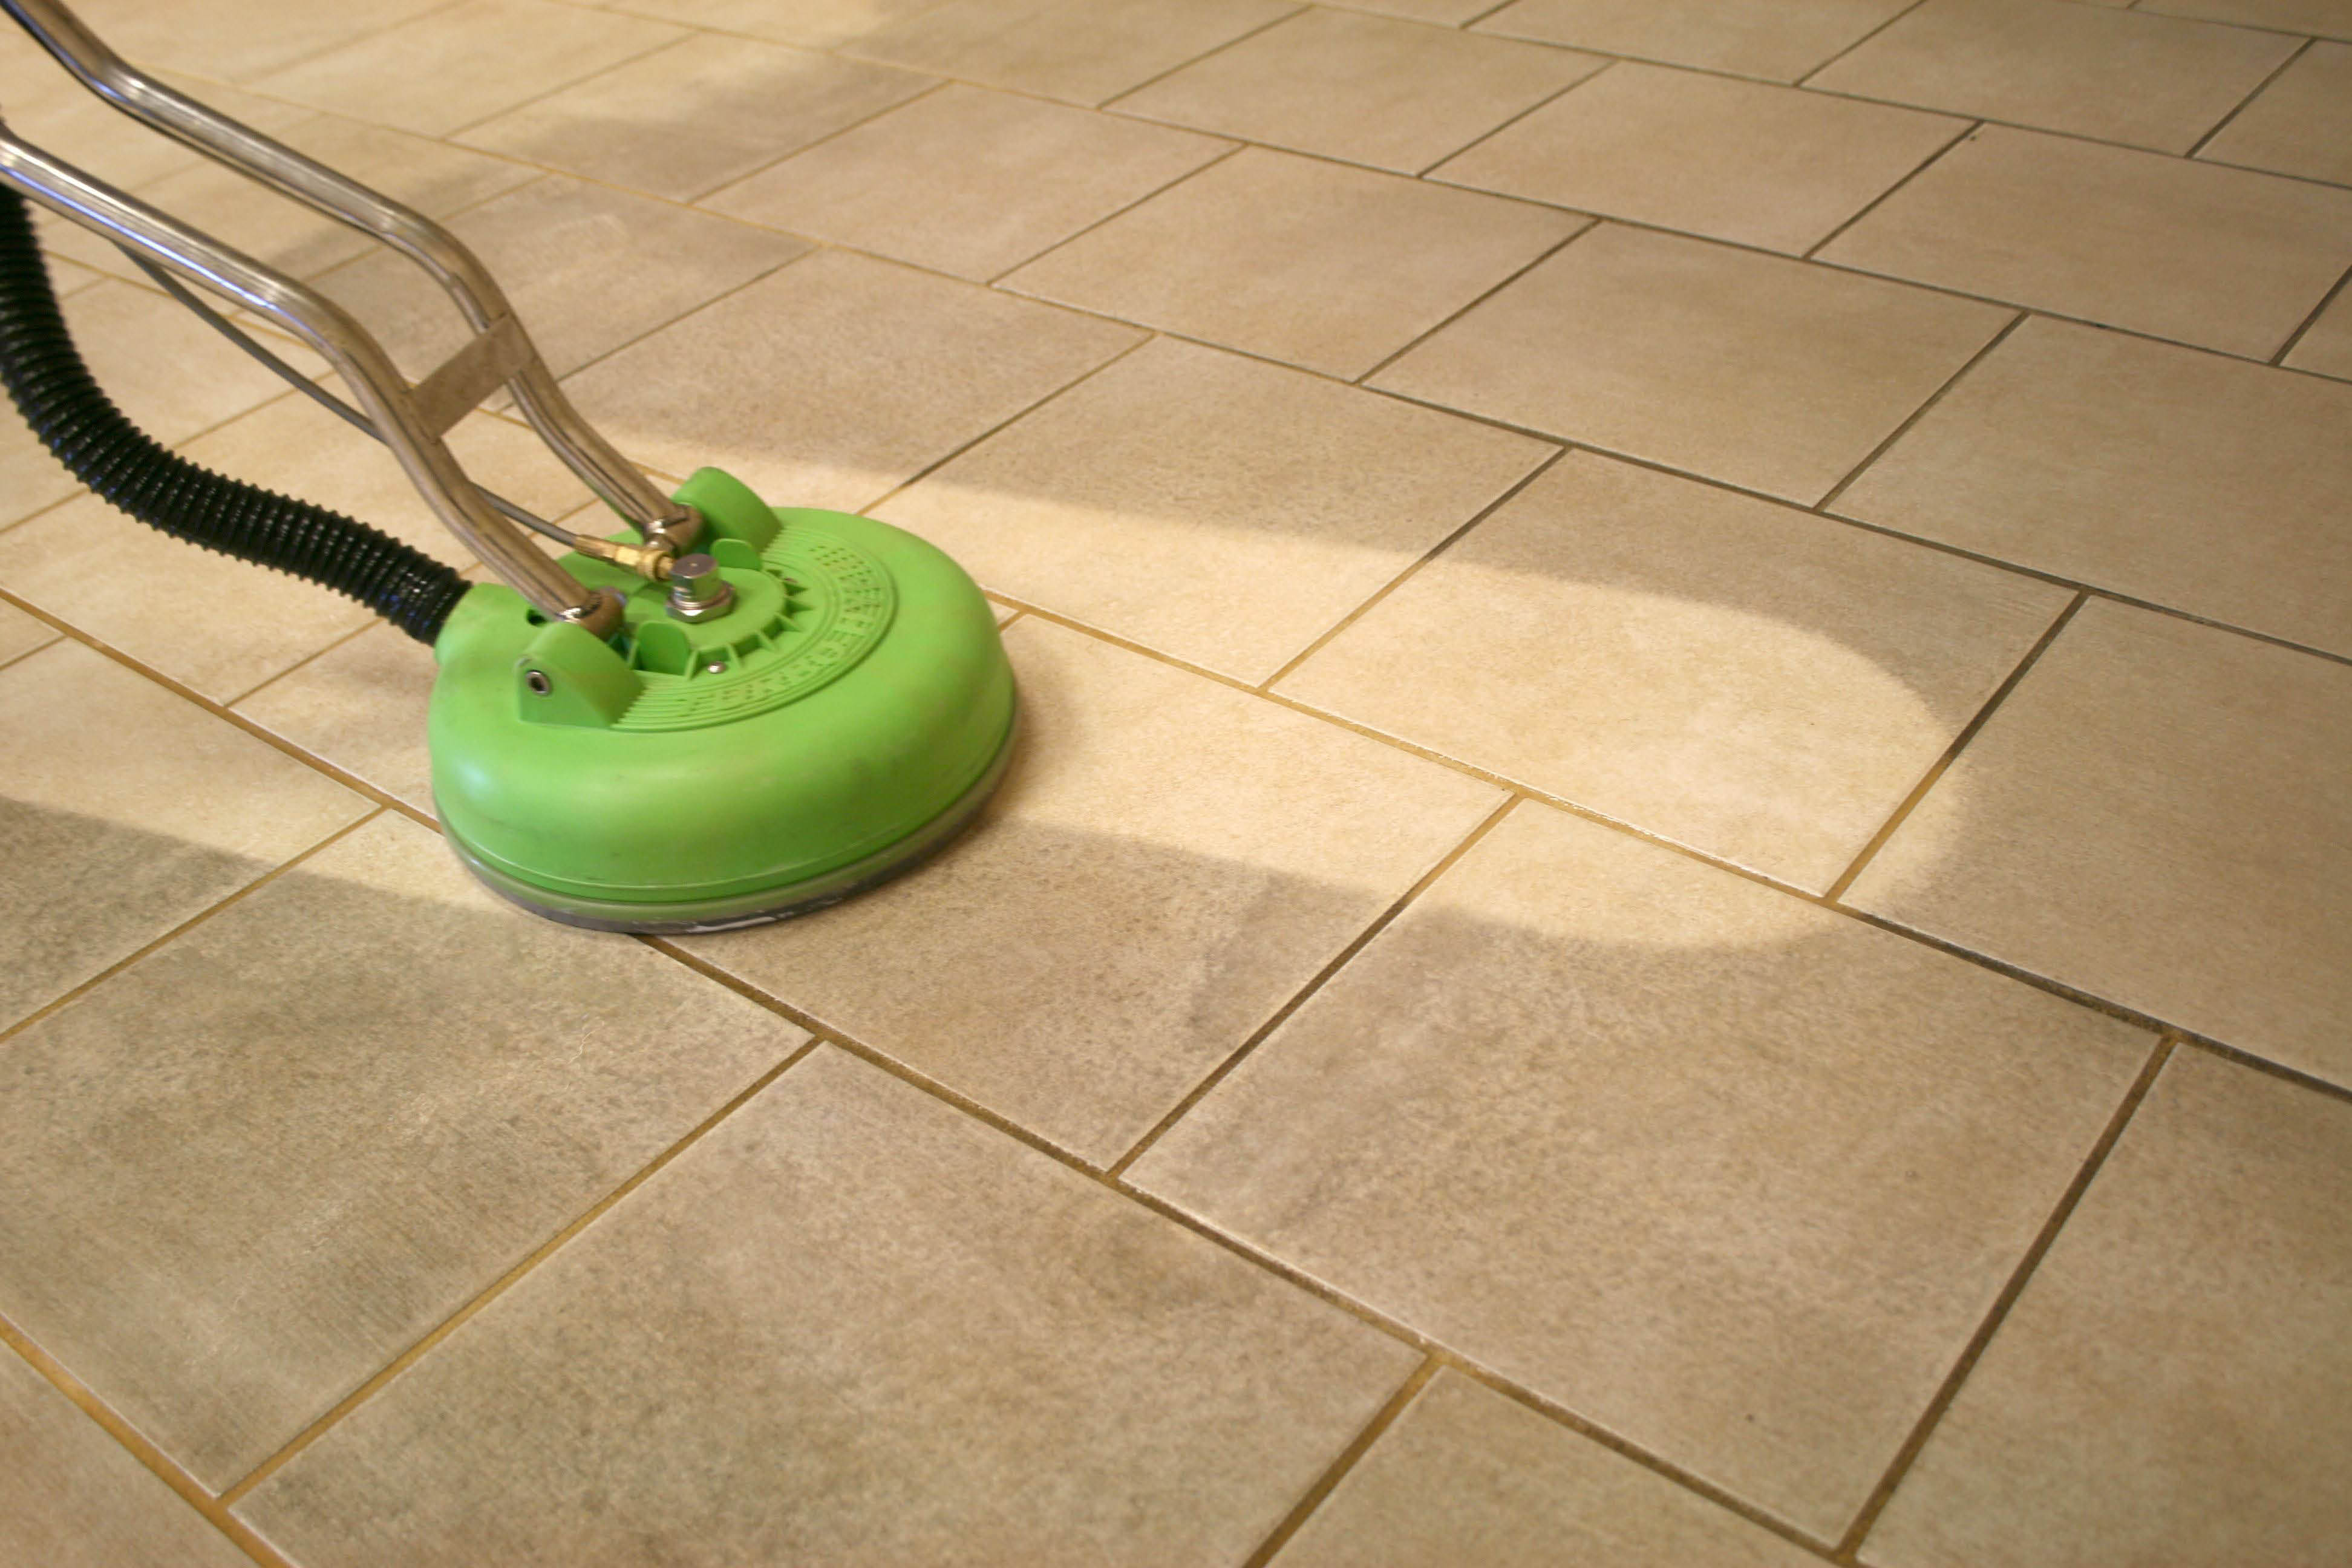 Tile and grout cleaning - tile and stone cleaning - Tubro Carpet Cleaning - Auburn, Washington